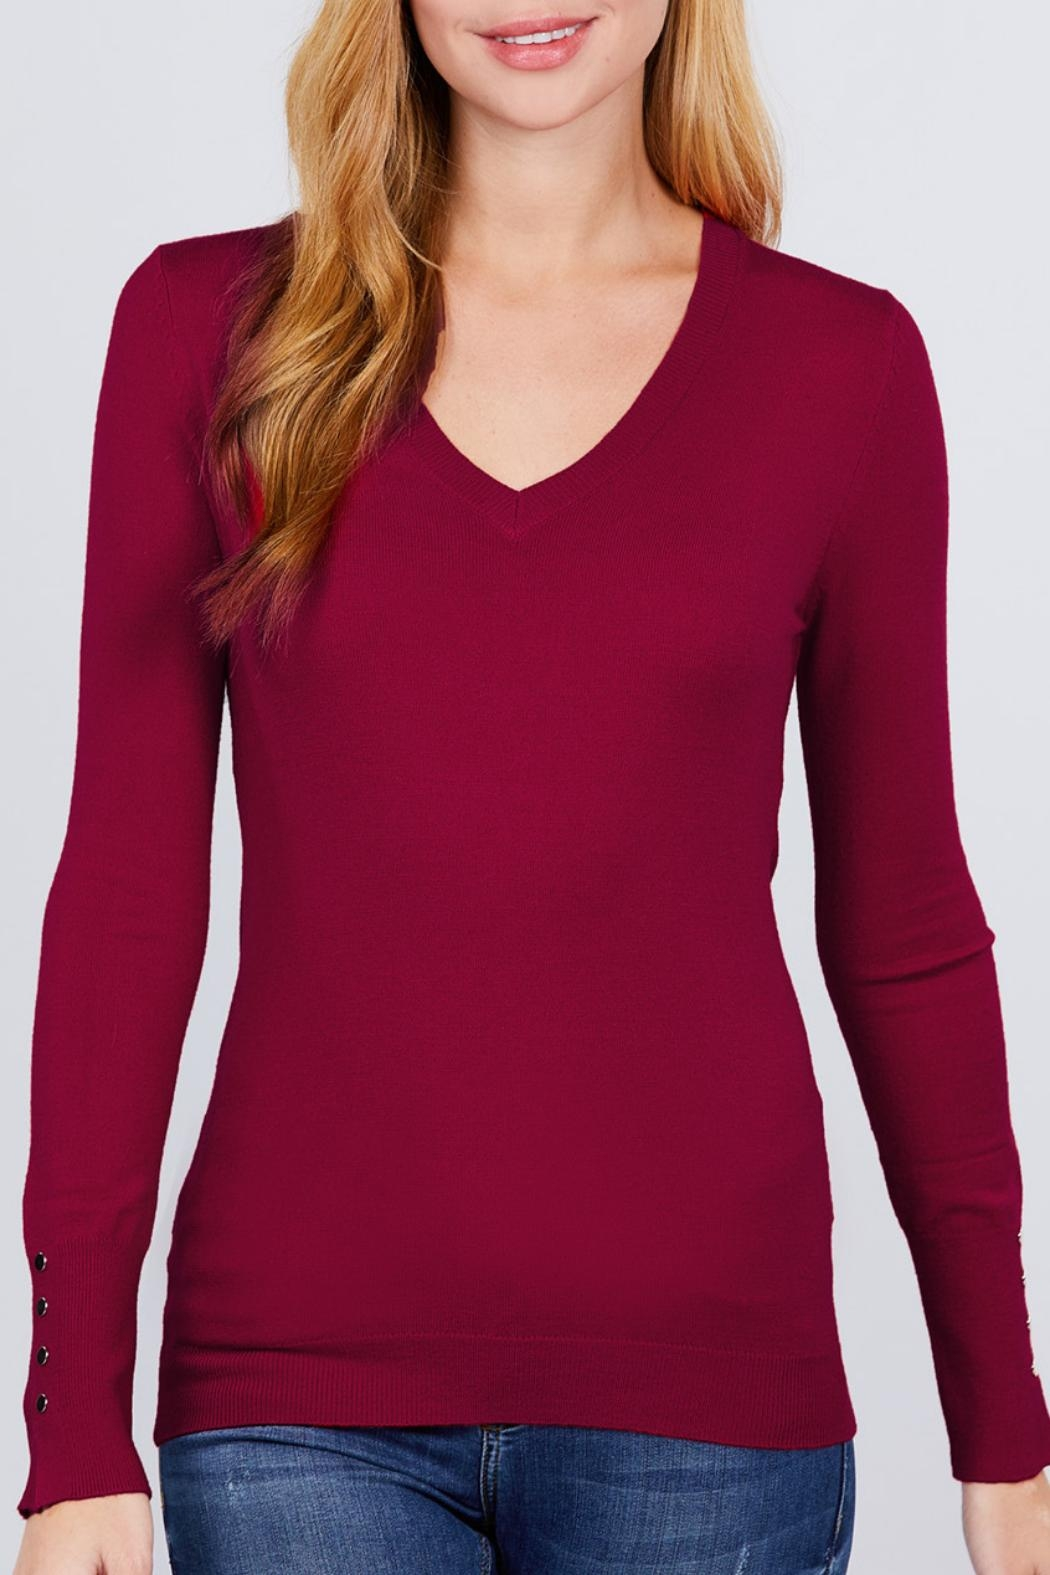 Active USA Wine V-Neck Sweater - Front Cropped Image